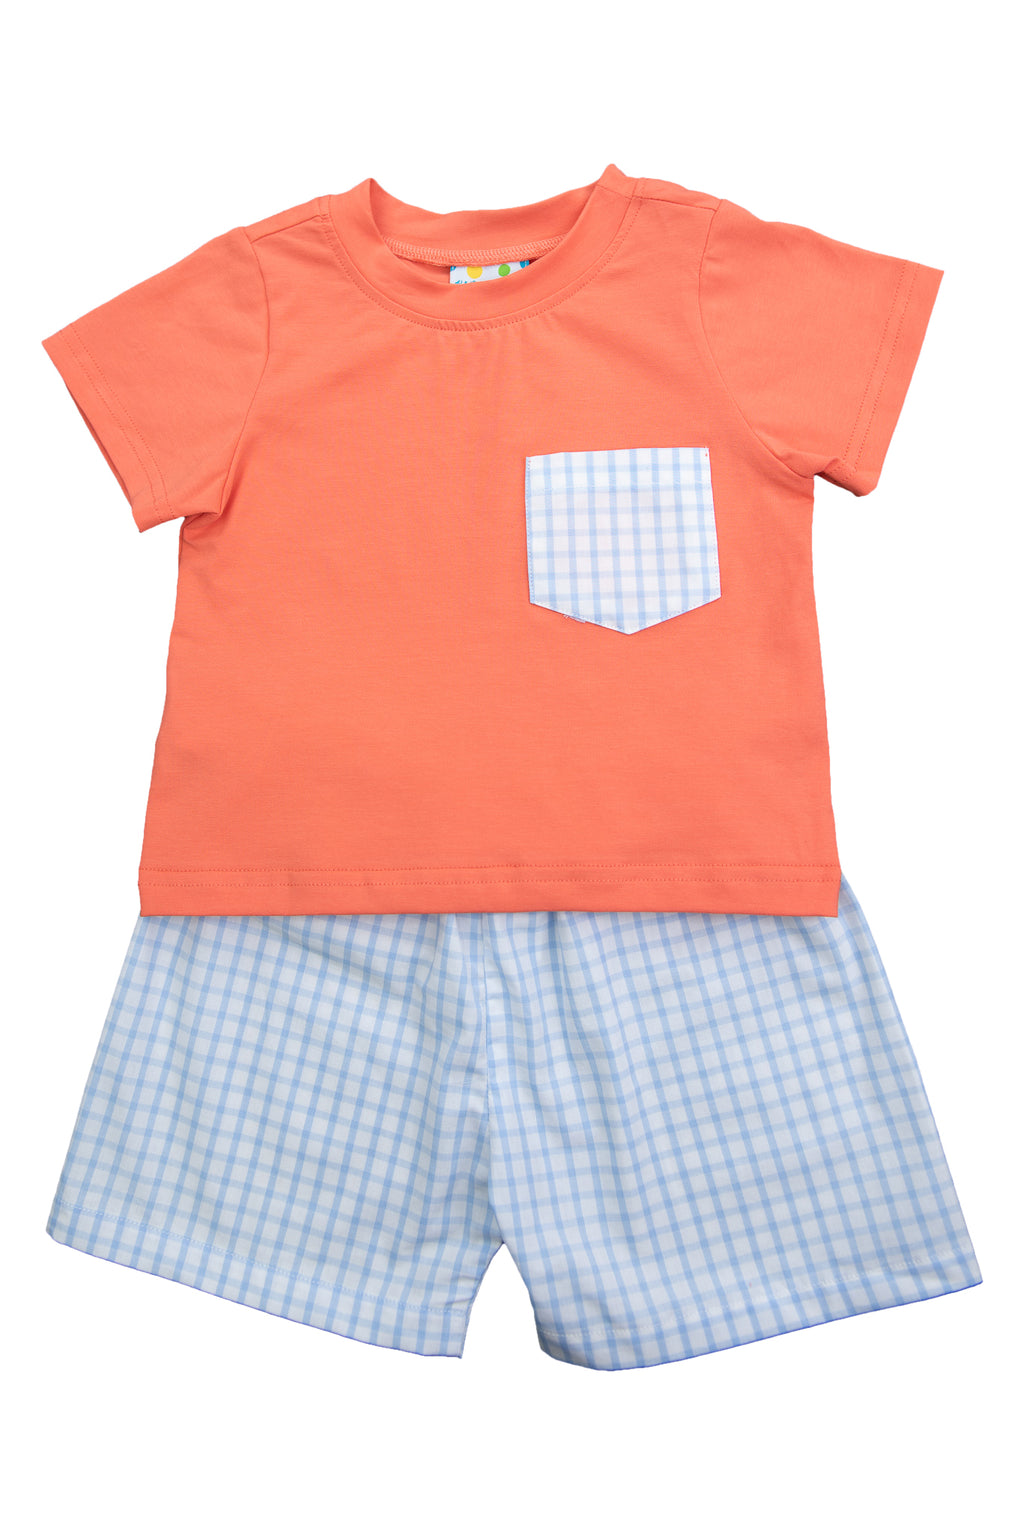 Boys Coral/Blue Check Shorts Set